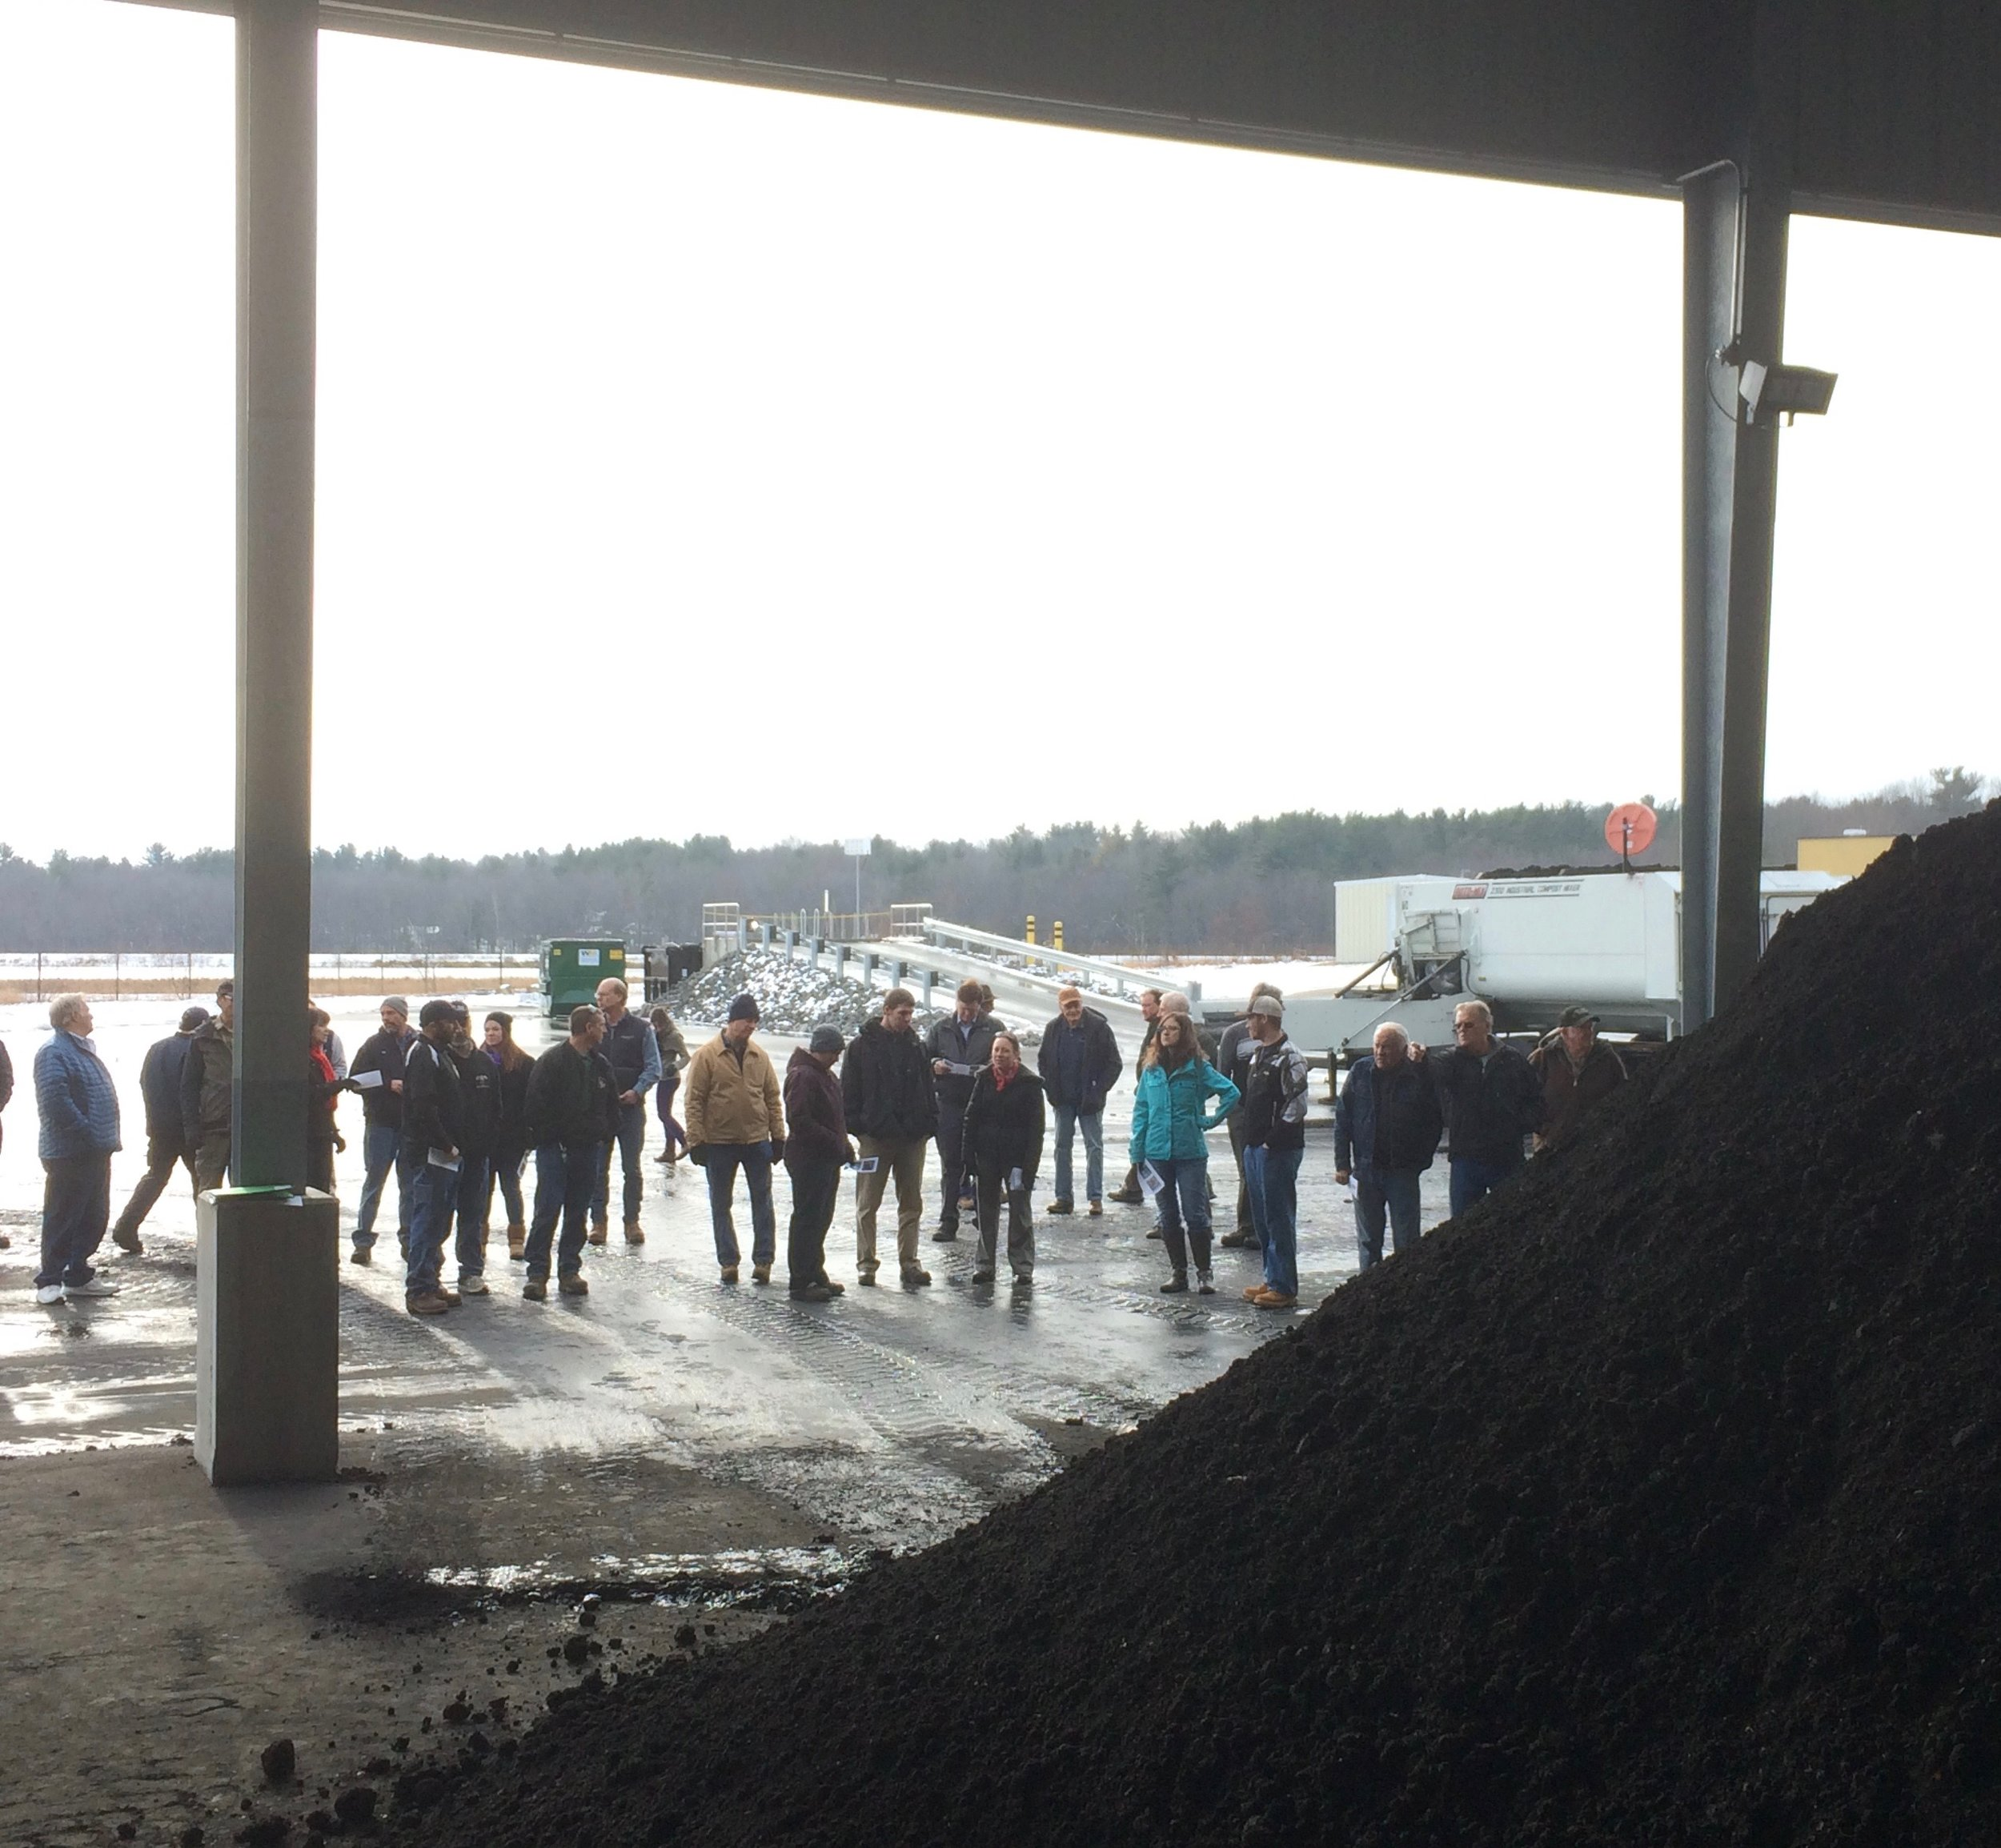 Attendees at the Sanford Sewerage District witnessed the production of the first batches of biosolids compost at New England's newest biosolids composting facility.